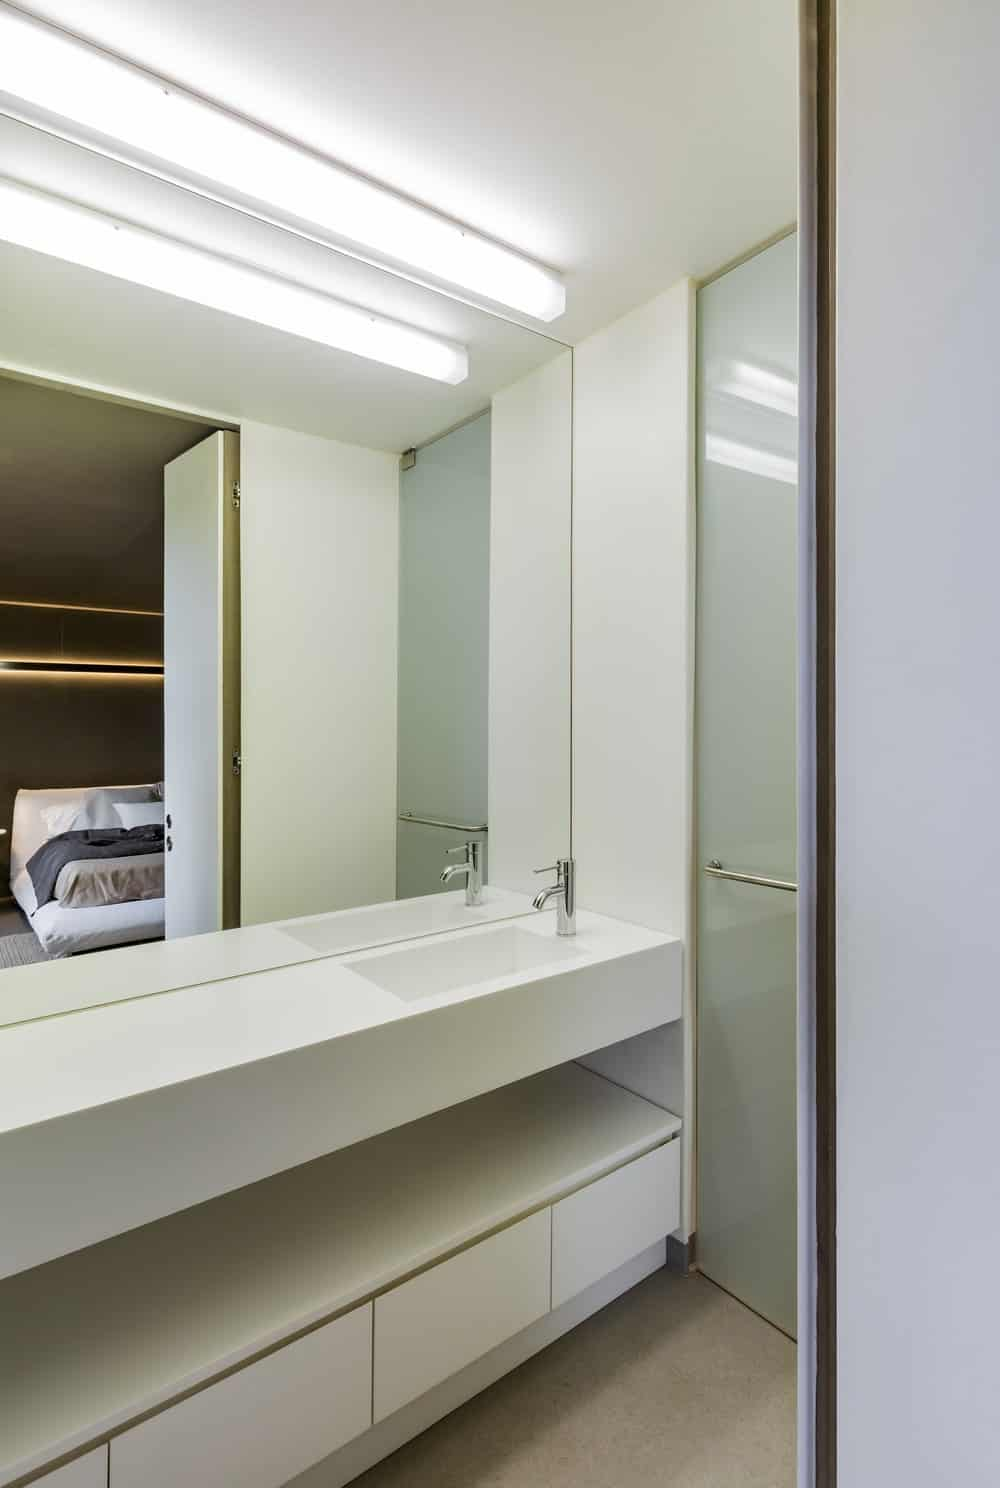 This is a close look at two-sink floating bright vanity of the bathroom topped with a mirror and a lamp.